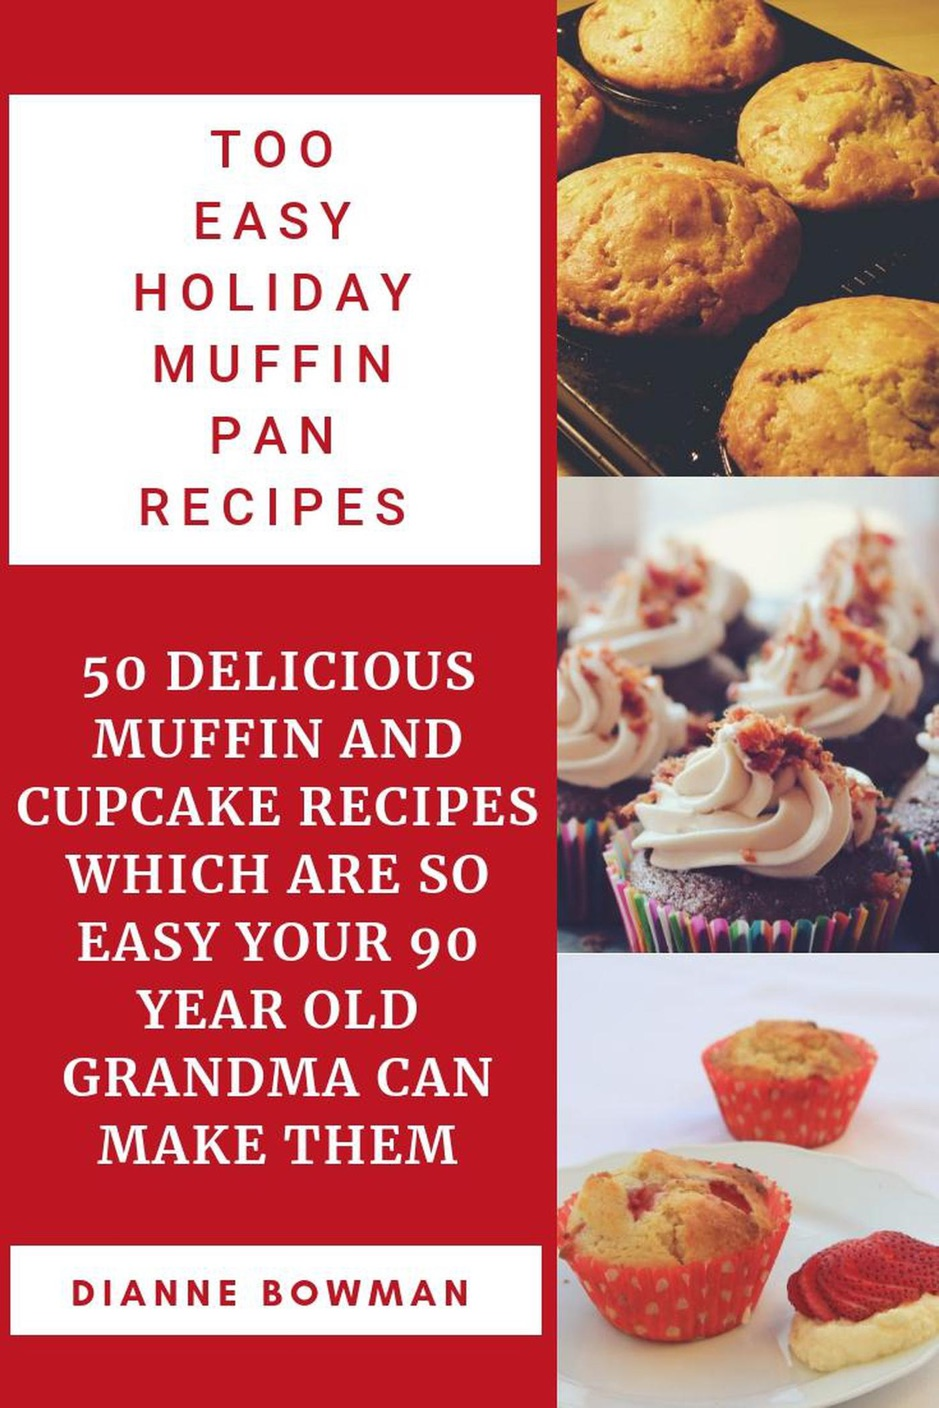 Too Easy Holiday Muffin pan Recipes: 50 Delicious Muffin and Cupcake Recipes Which are so Easy Your 90 Year old Grandma can Make Them.